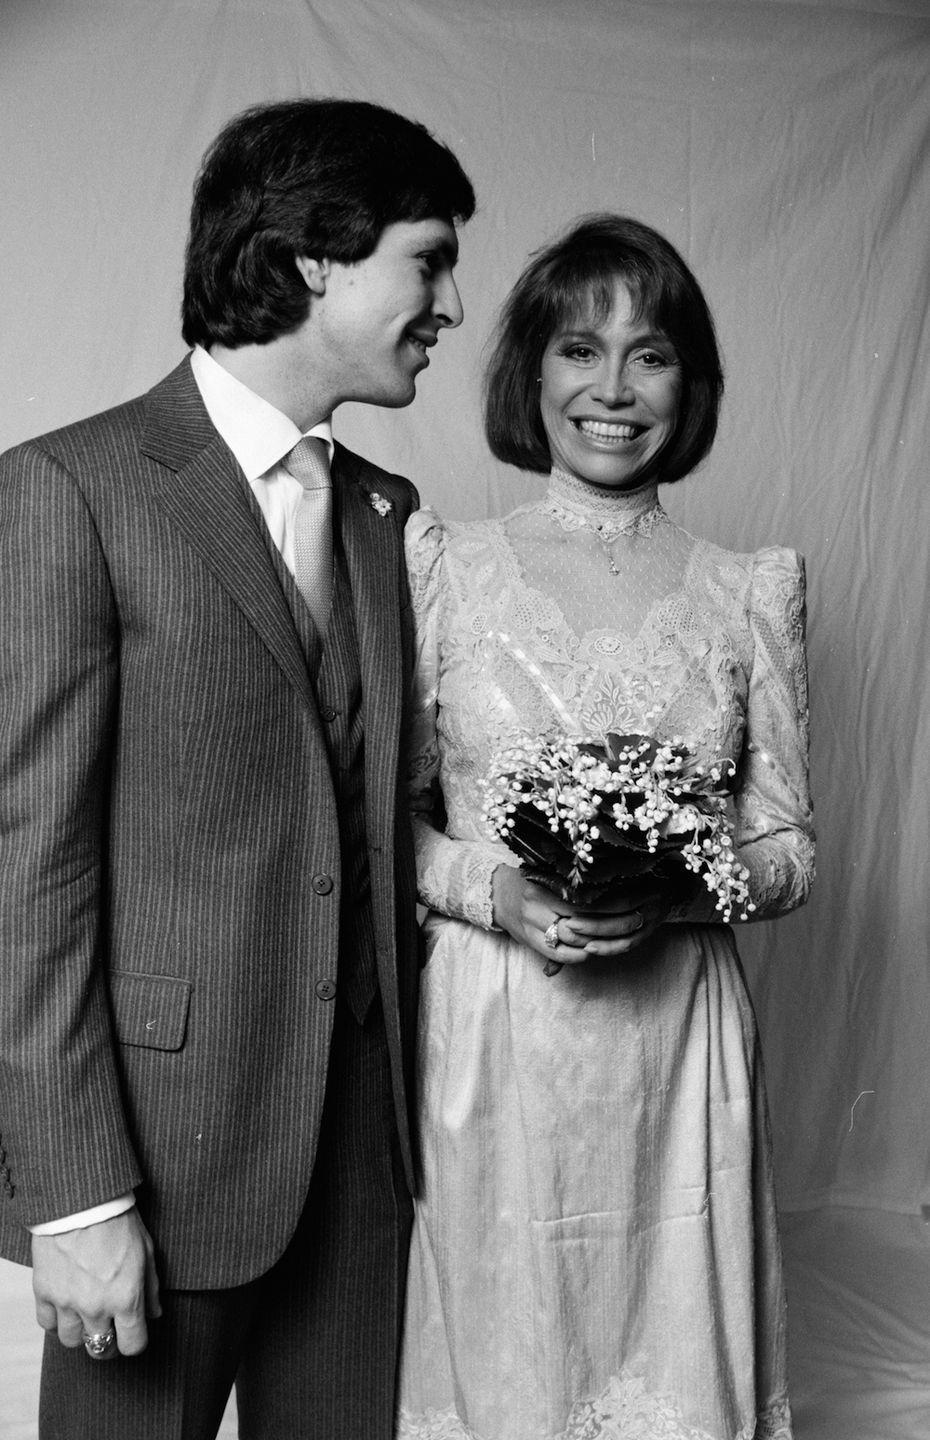 """<p>Mary Tyler Moore chose a more subdued version of an on-trend '80s look: Gathered sleeves and a high lace neckline. </p><p><a href=""""http://www.goodhousekeeping.com/beauty/fashion/a33719/wedding-dress-trends-through-the-years/"""" rel=""""nofollow noopener"""" target=""""_blank"""" data-ylk=""""slk:See the evolution of the wedding dress »"""" class=""""link rapid-noclick-resp""""><em>See the evolution of the wedding dress »</em></a><br></p>"""